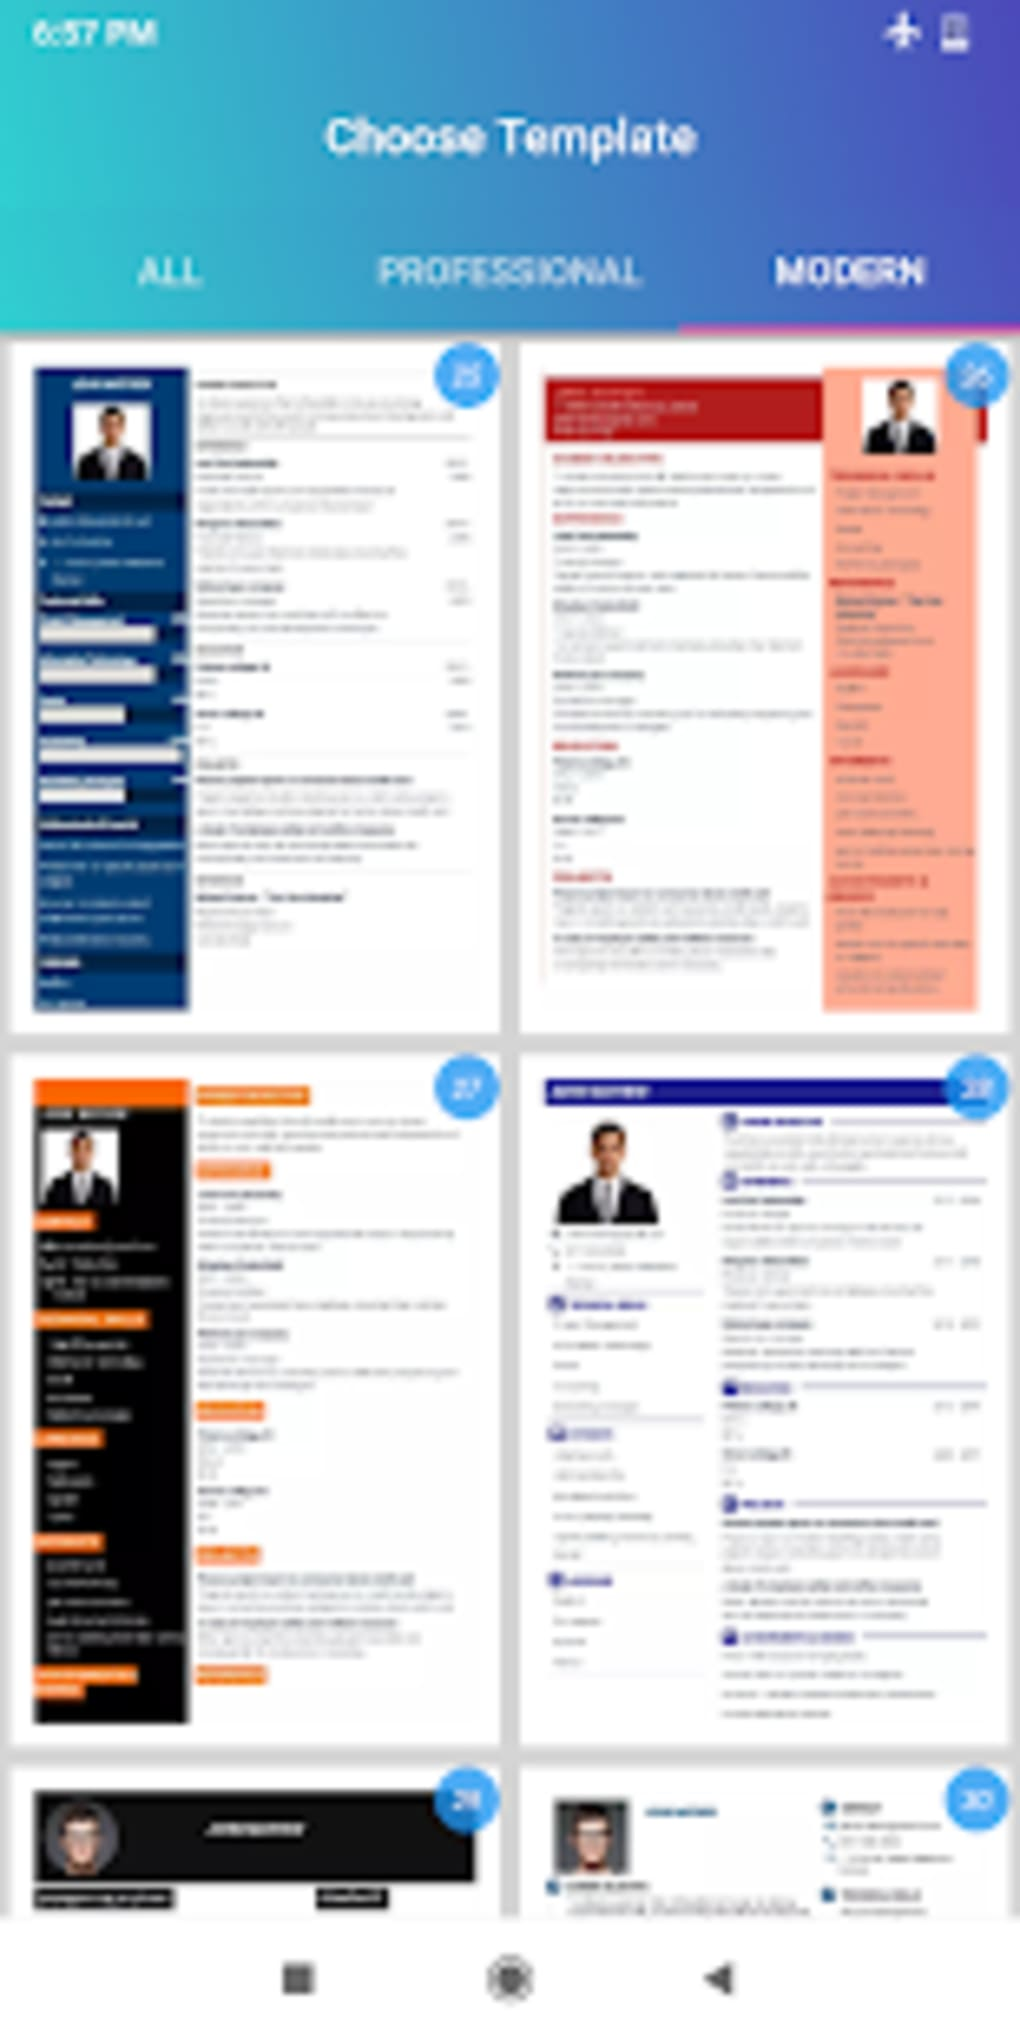 Resume Builder App Free CV maker CV templates 2019 لنظام Android - تنزيل